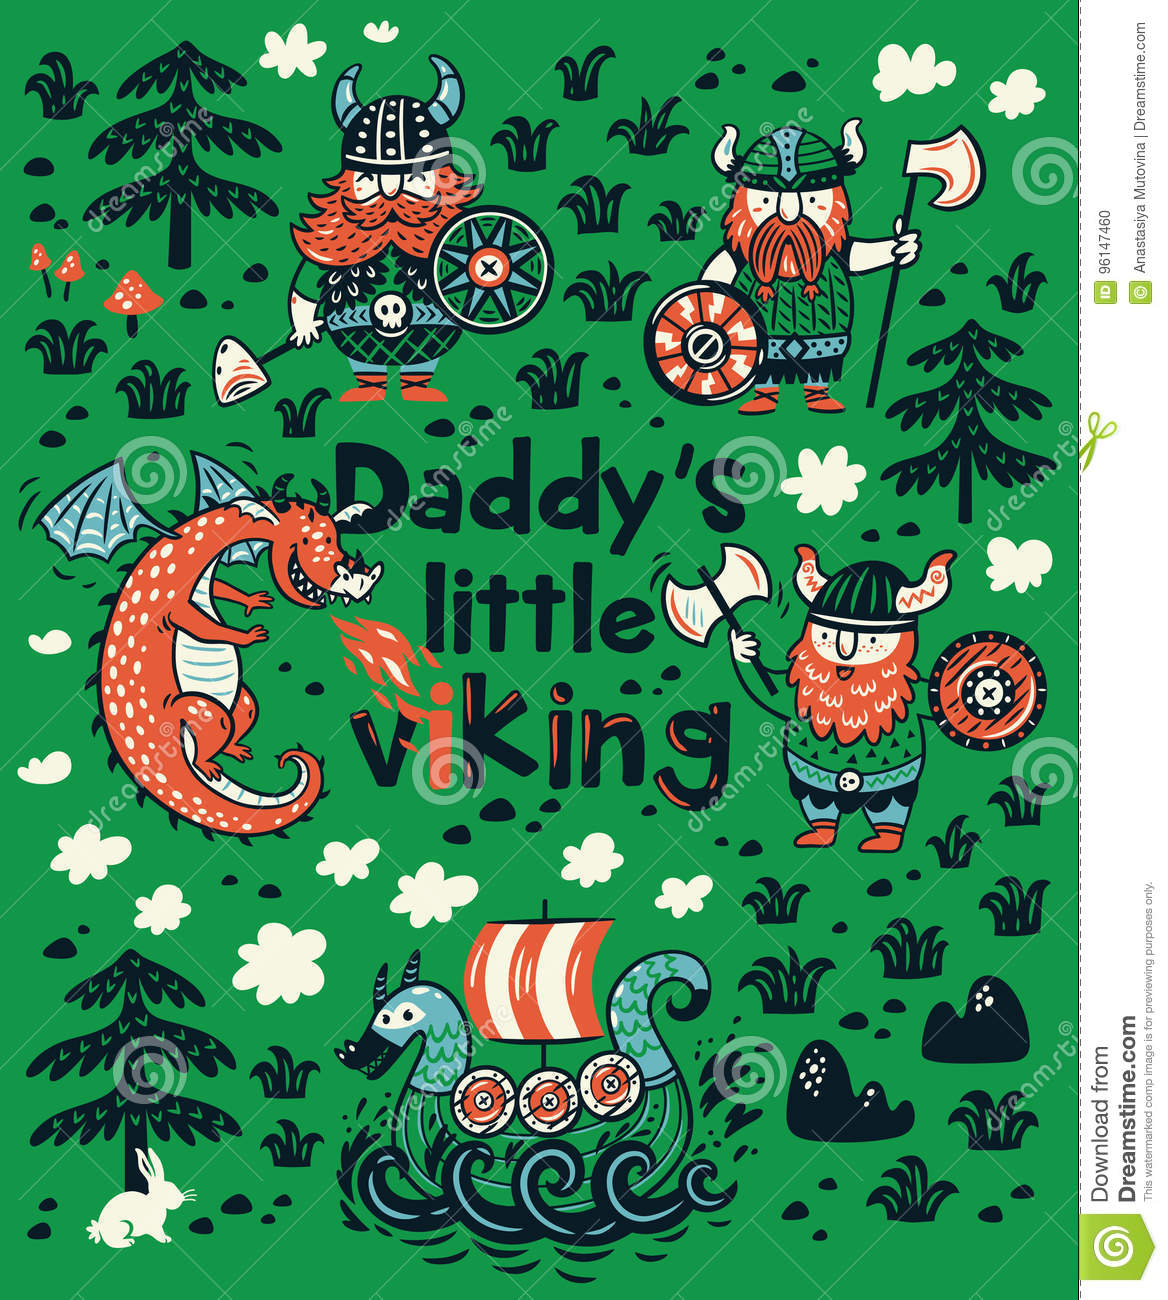 c3711579 Daddys Little Viking Print For Childrens Clothing Stock Vector ...